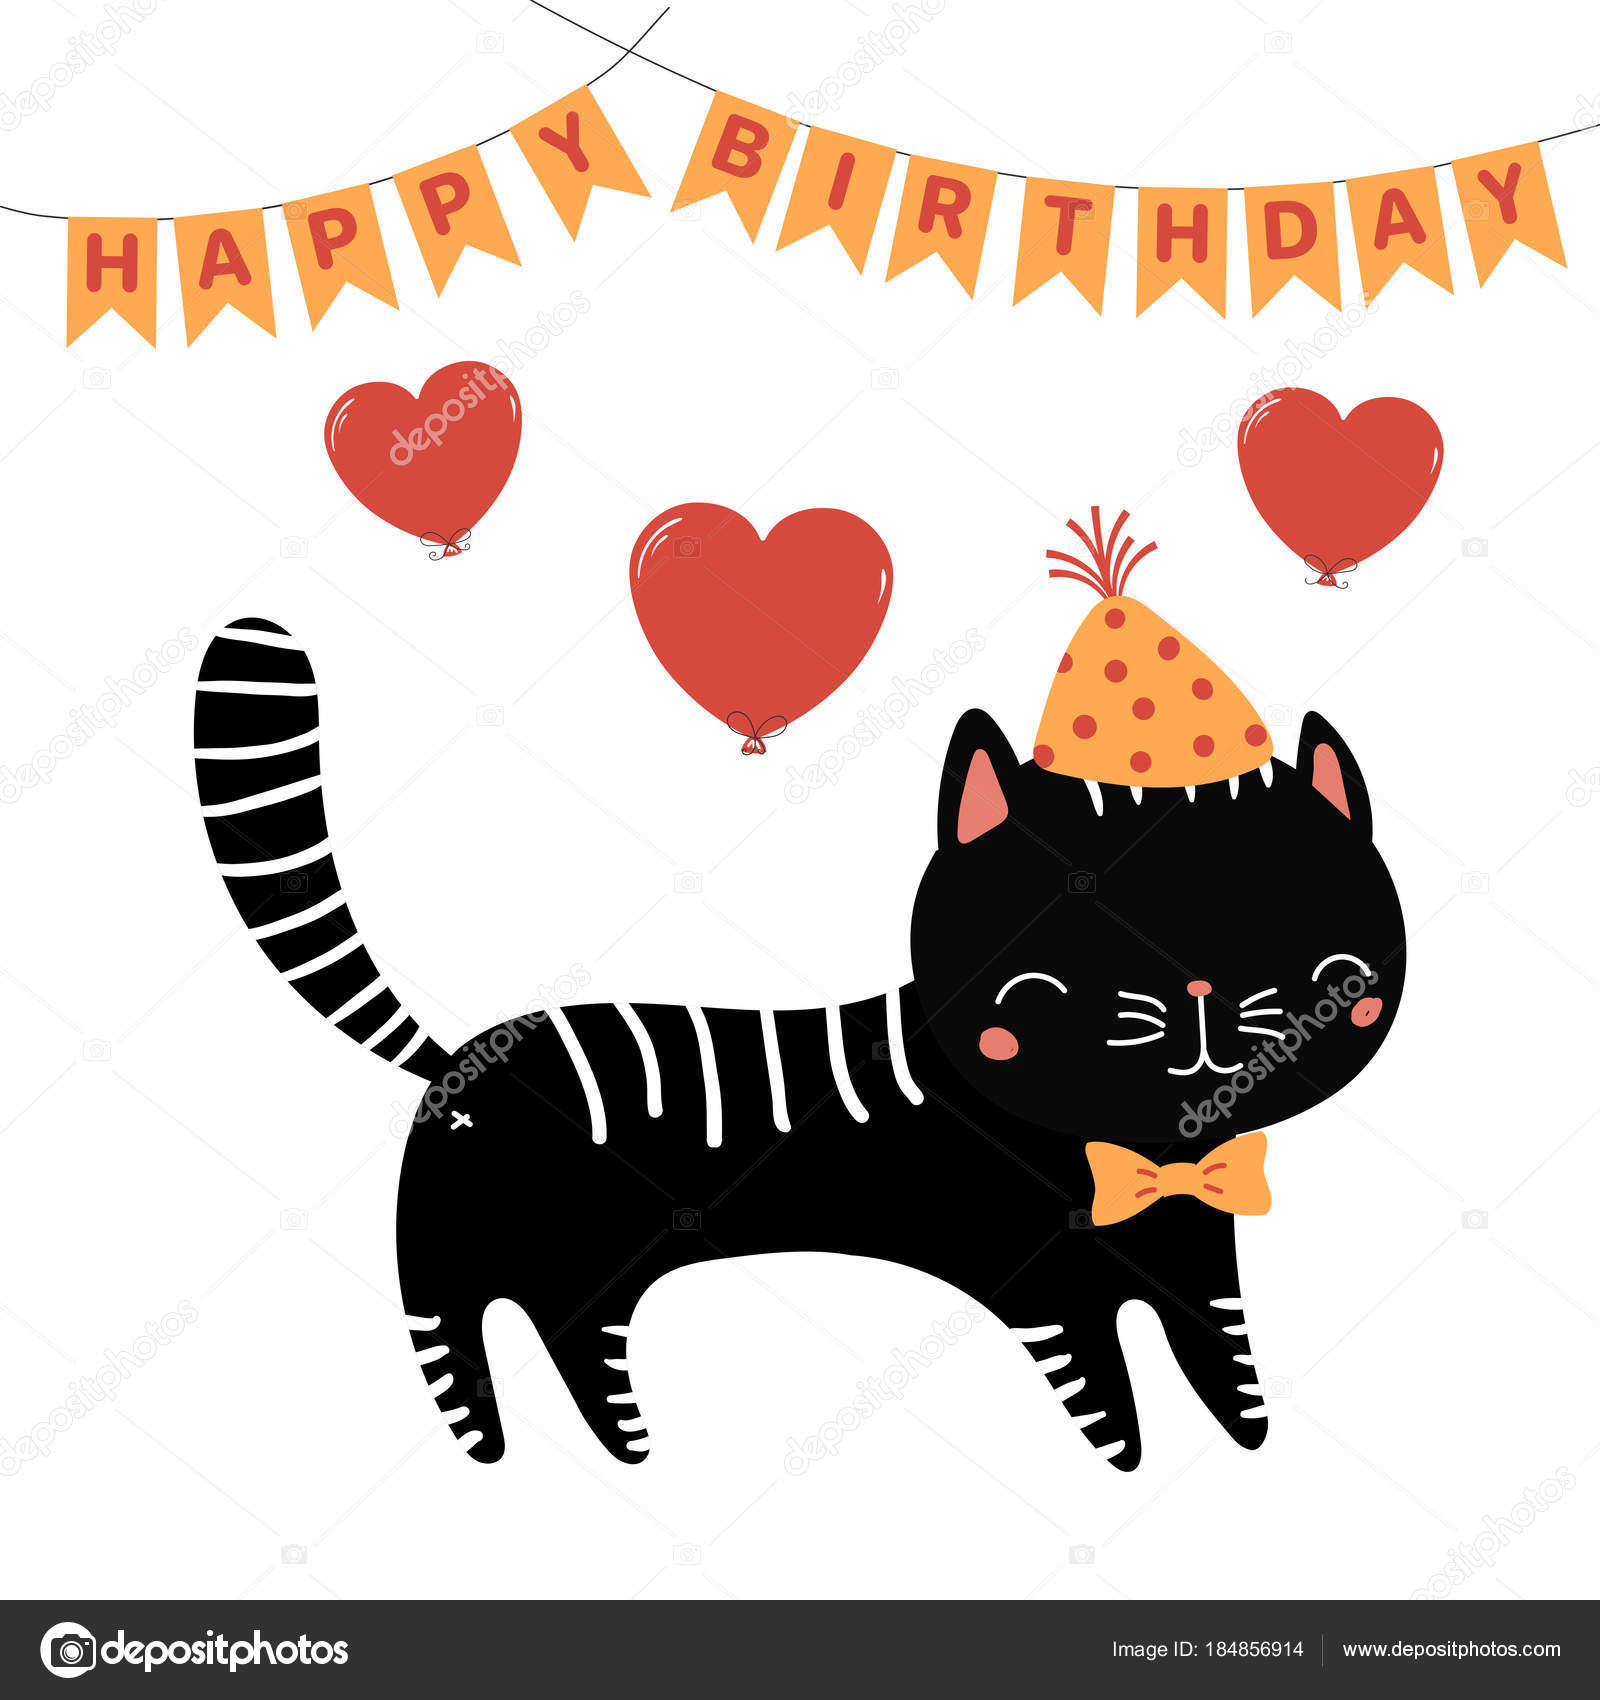 Hand Drawn Happy Birthday Greeting Card With Cute Funny Cartoon Cat In Party Hat And Bow Tie Bunting Vector Illustration By